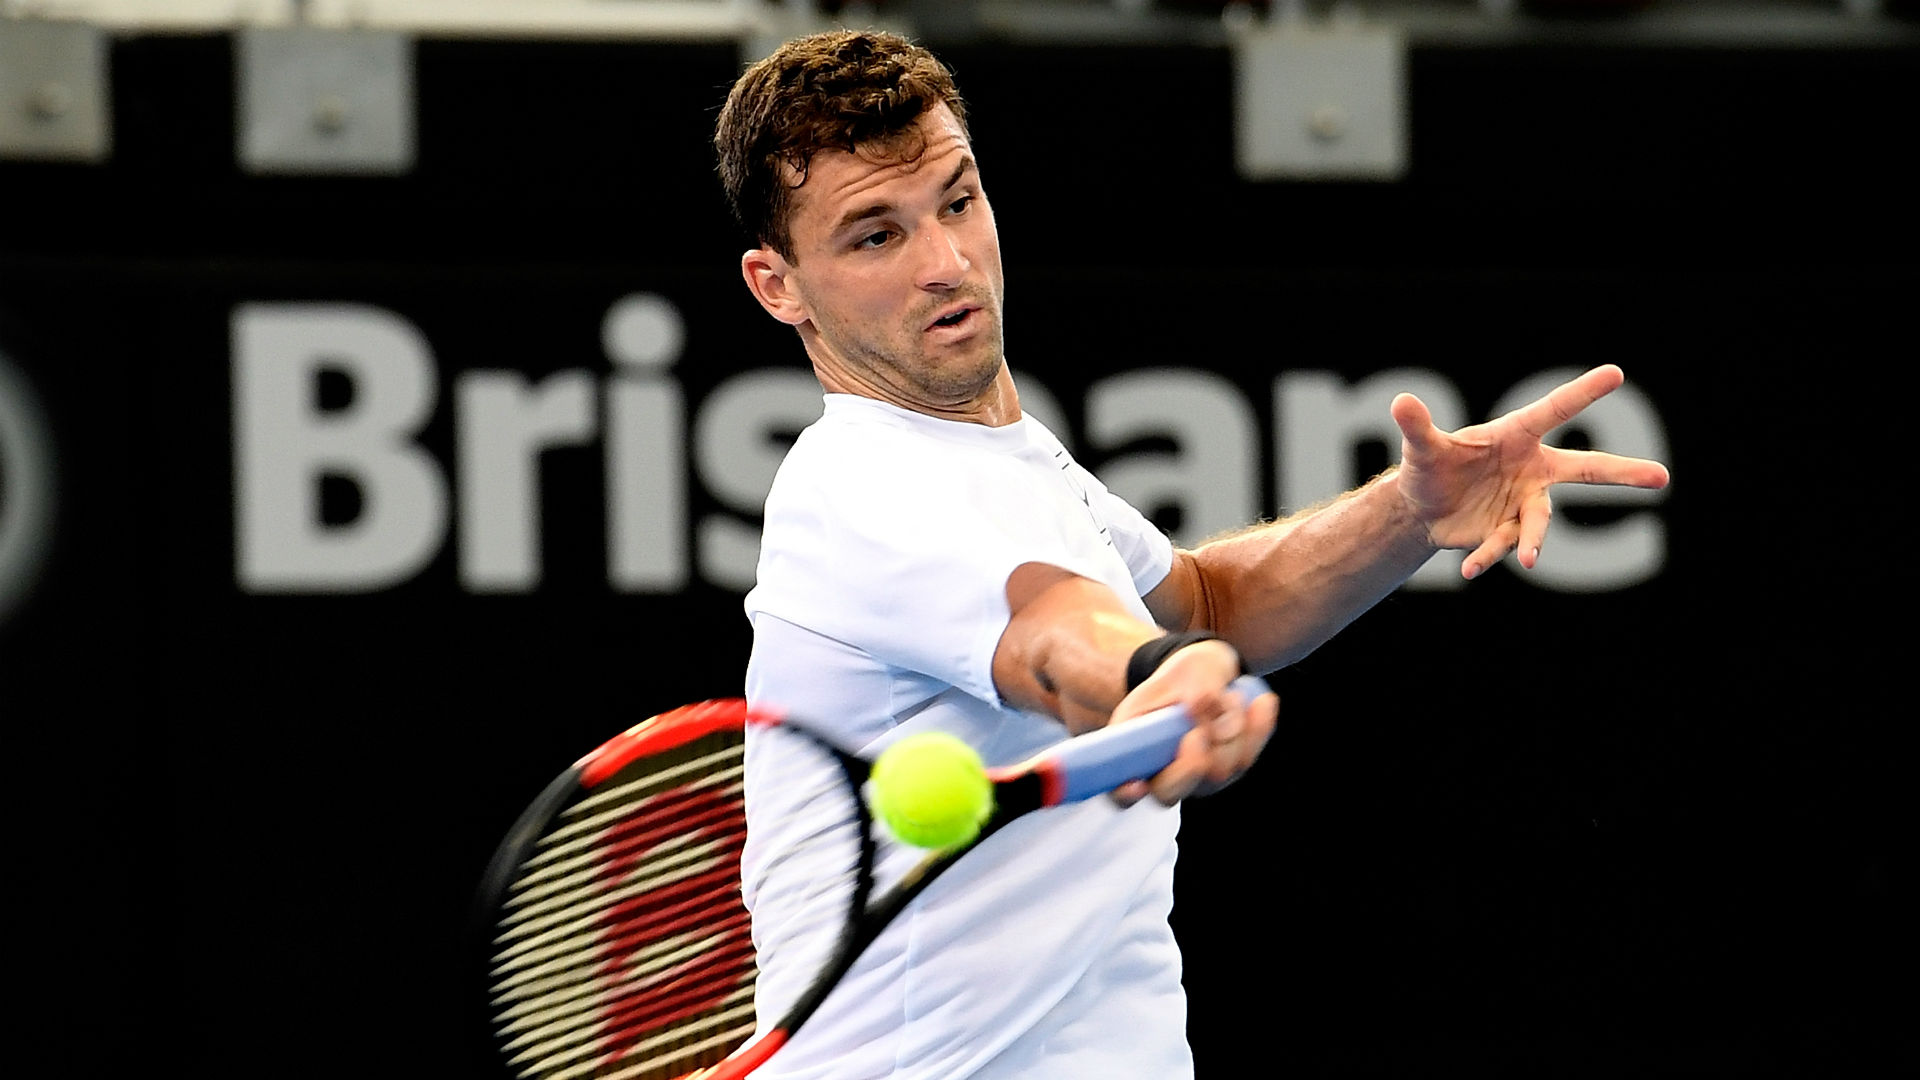 Dimitrov begins Brisbane title defence with tough win